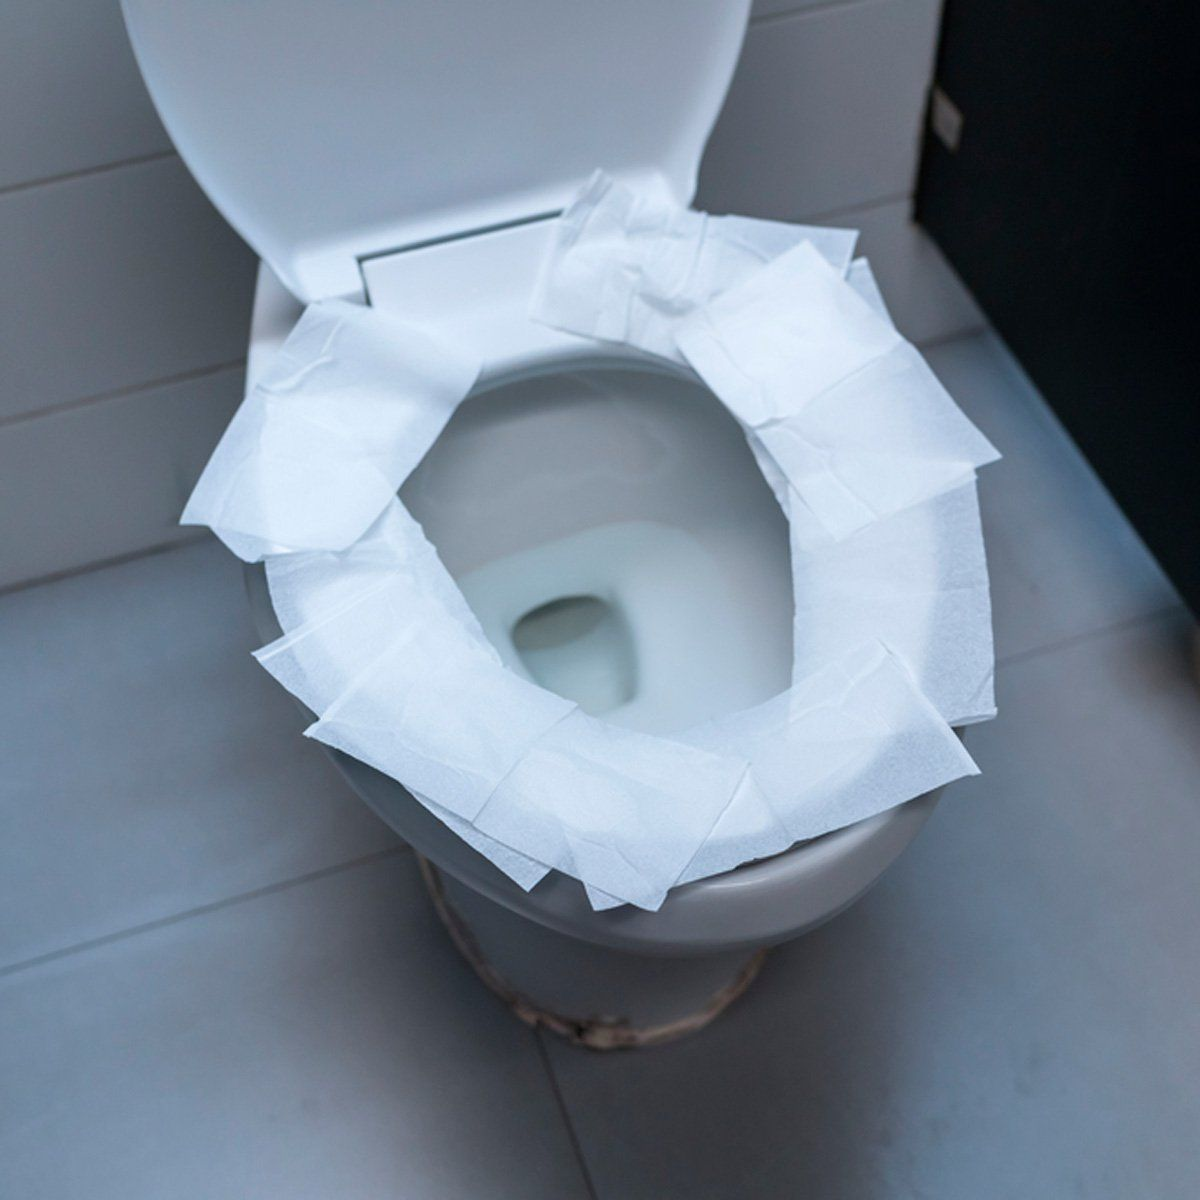 Stop Believing This Toilet Myth With Images Toilet